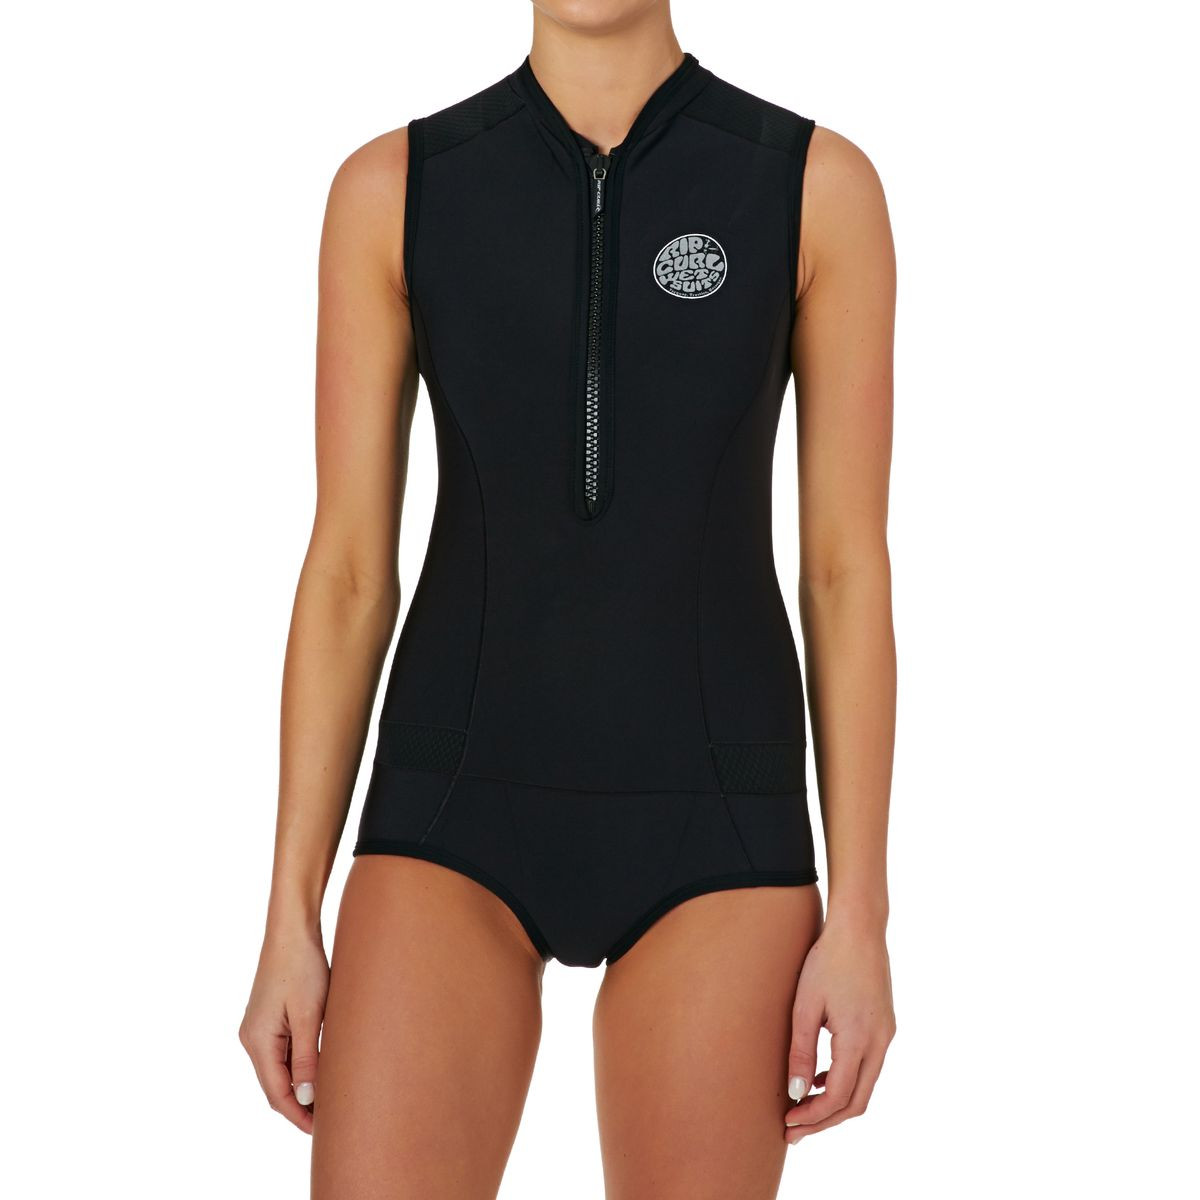 a0dcf29bda Rip Curl Womens G-bomb 1mm Front Zip Capsleeve Shorty Wetsuit - Black